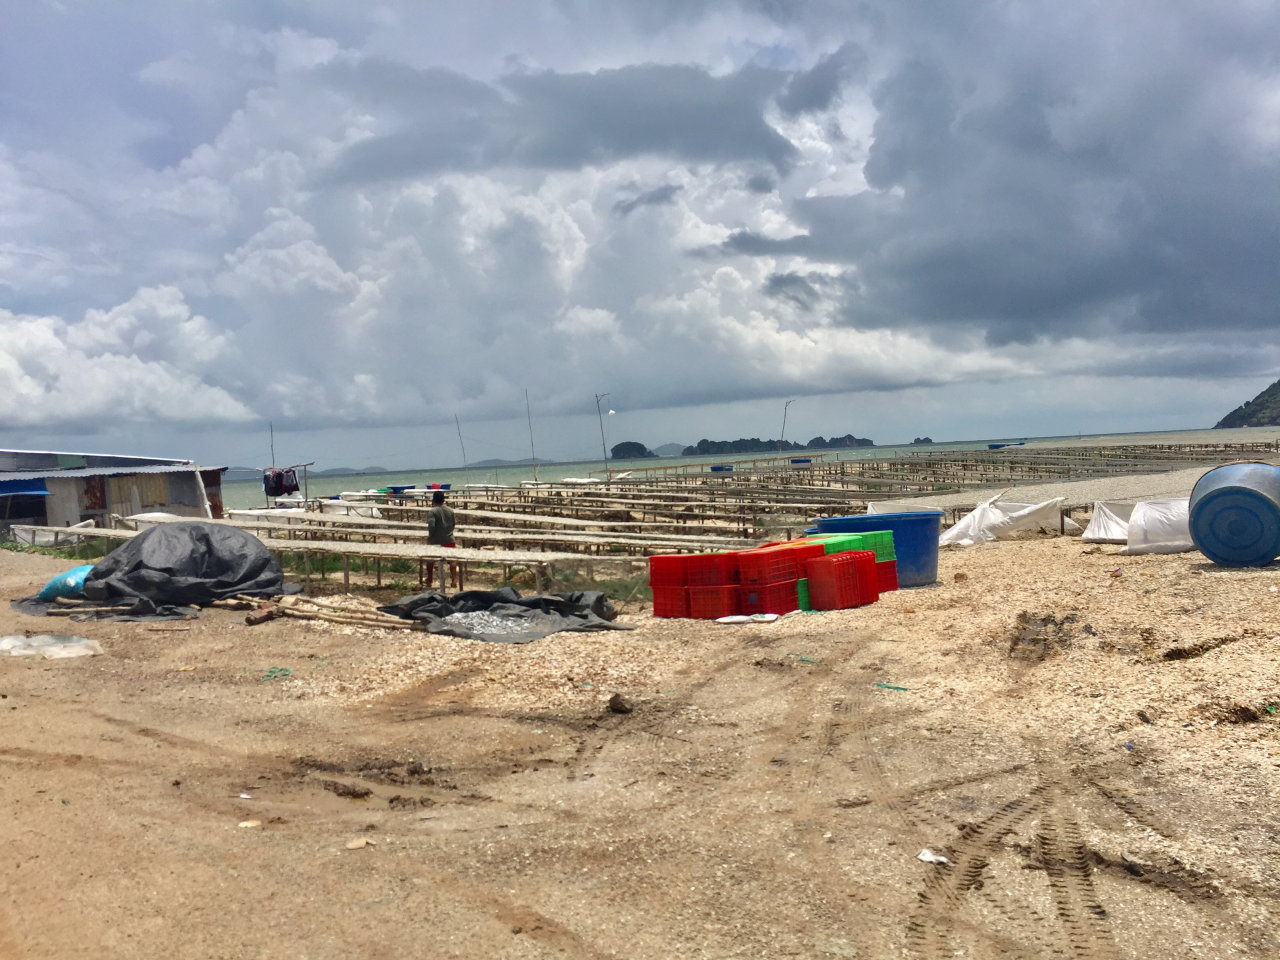 Company discovered 'filling' 5.3 hectares of sea in southern Vietnam